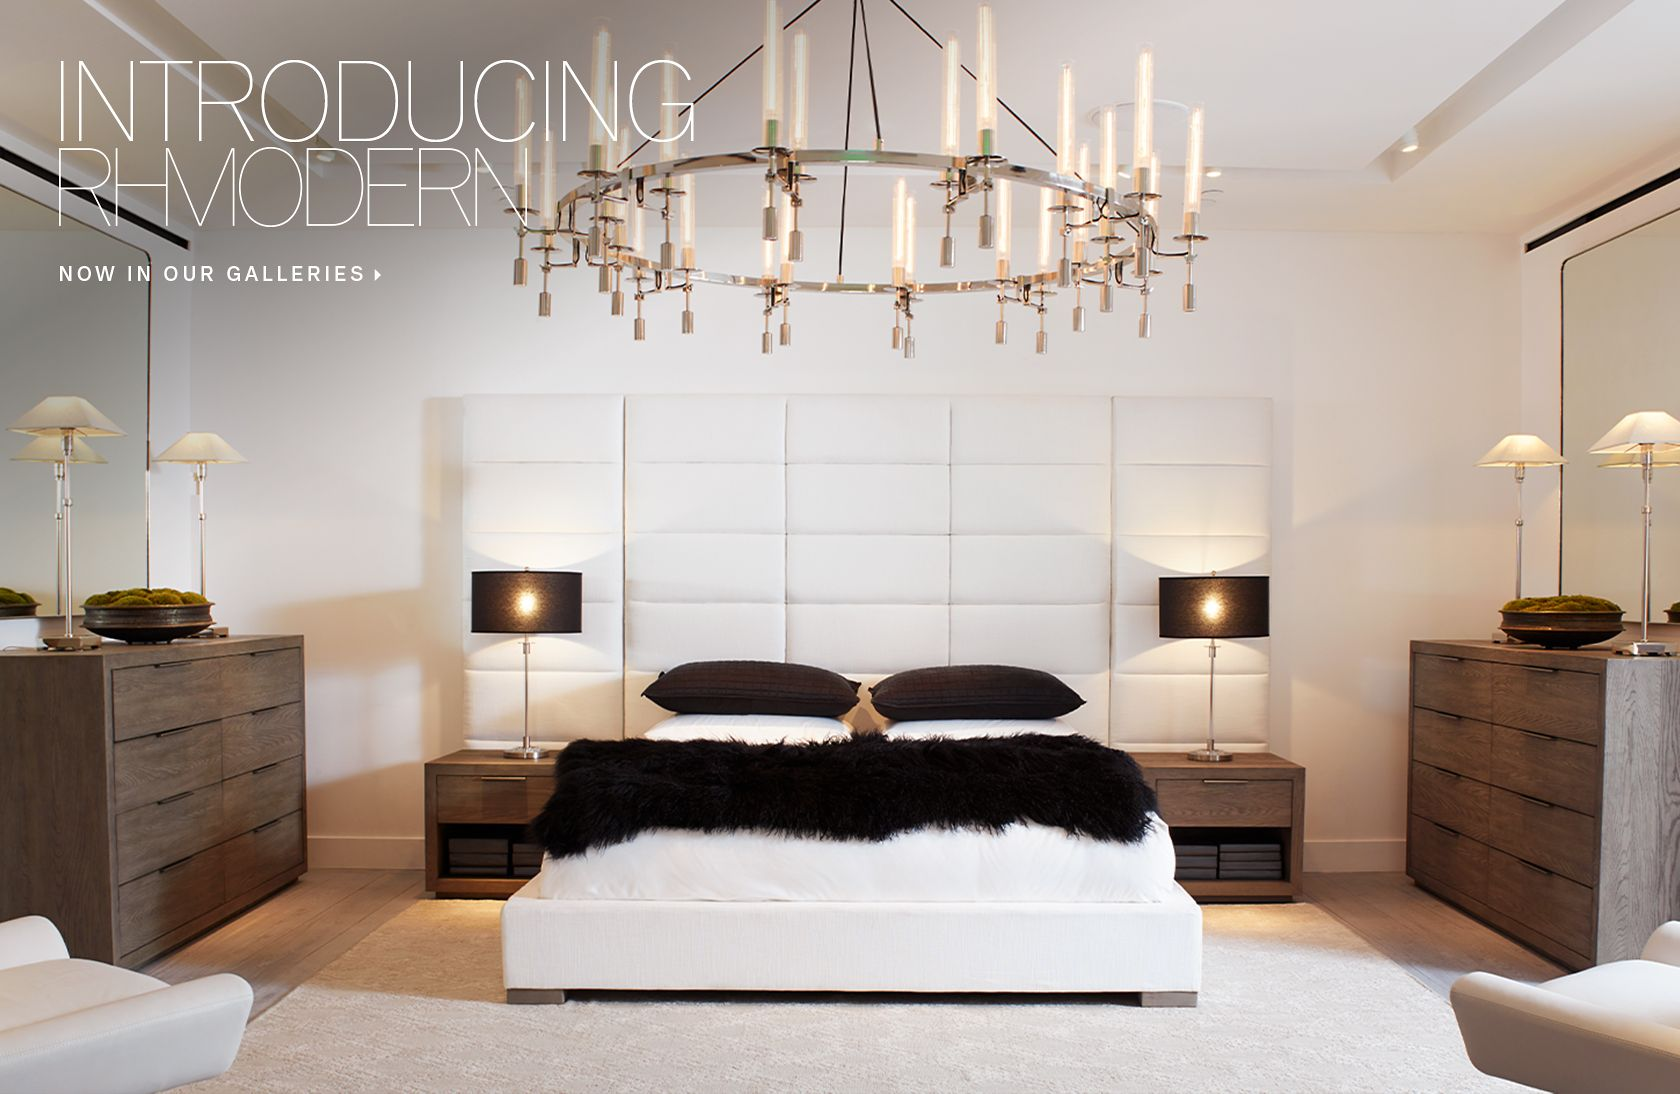 Restoration hardware bedroom -  Introducing Rh Modern Now In Our Galleries